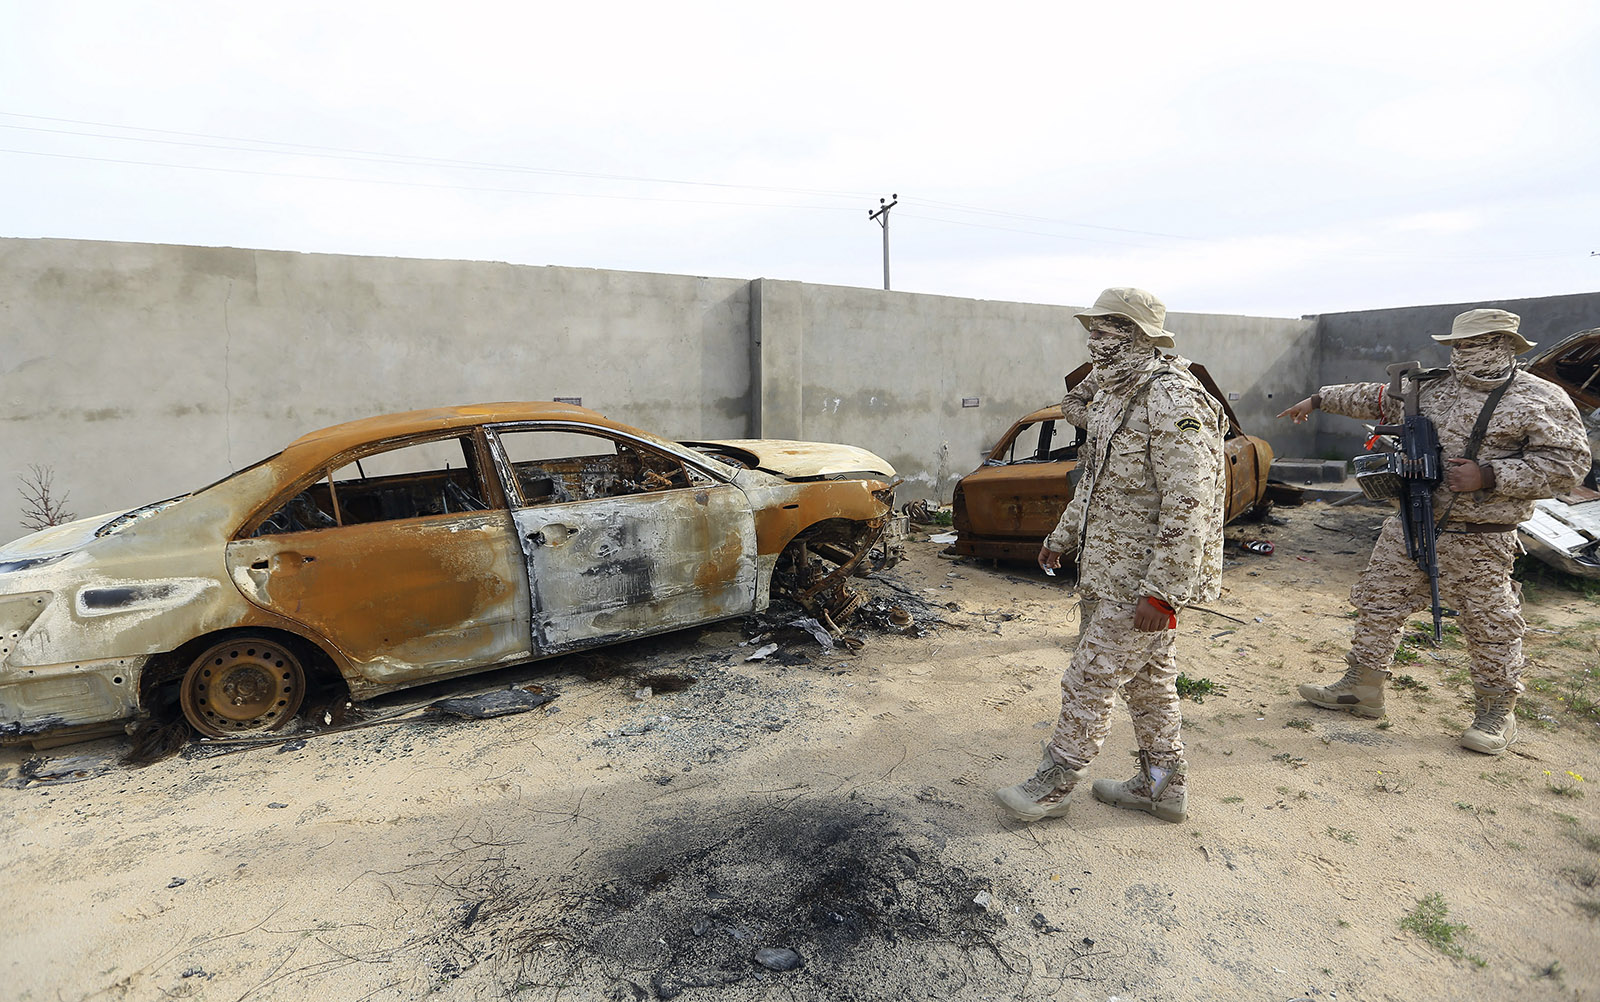 A Minister, a General, & the Militias: Libya's Shifting Balance of Power